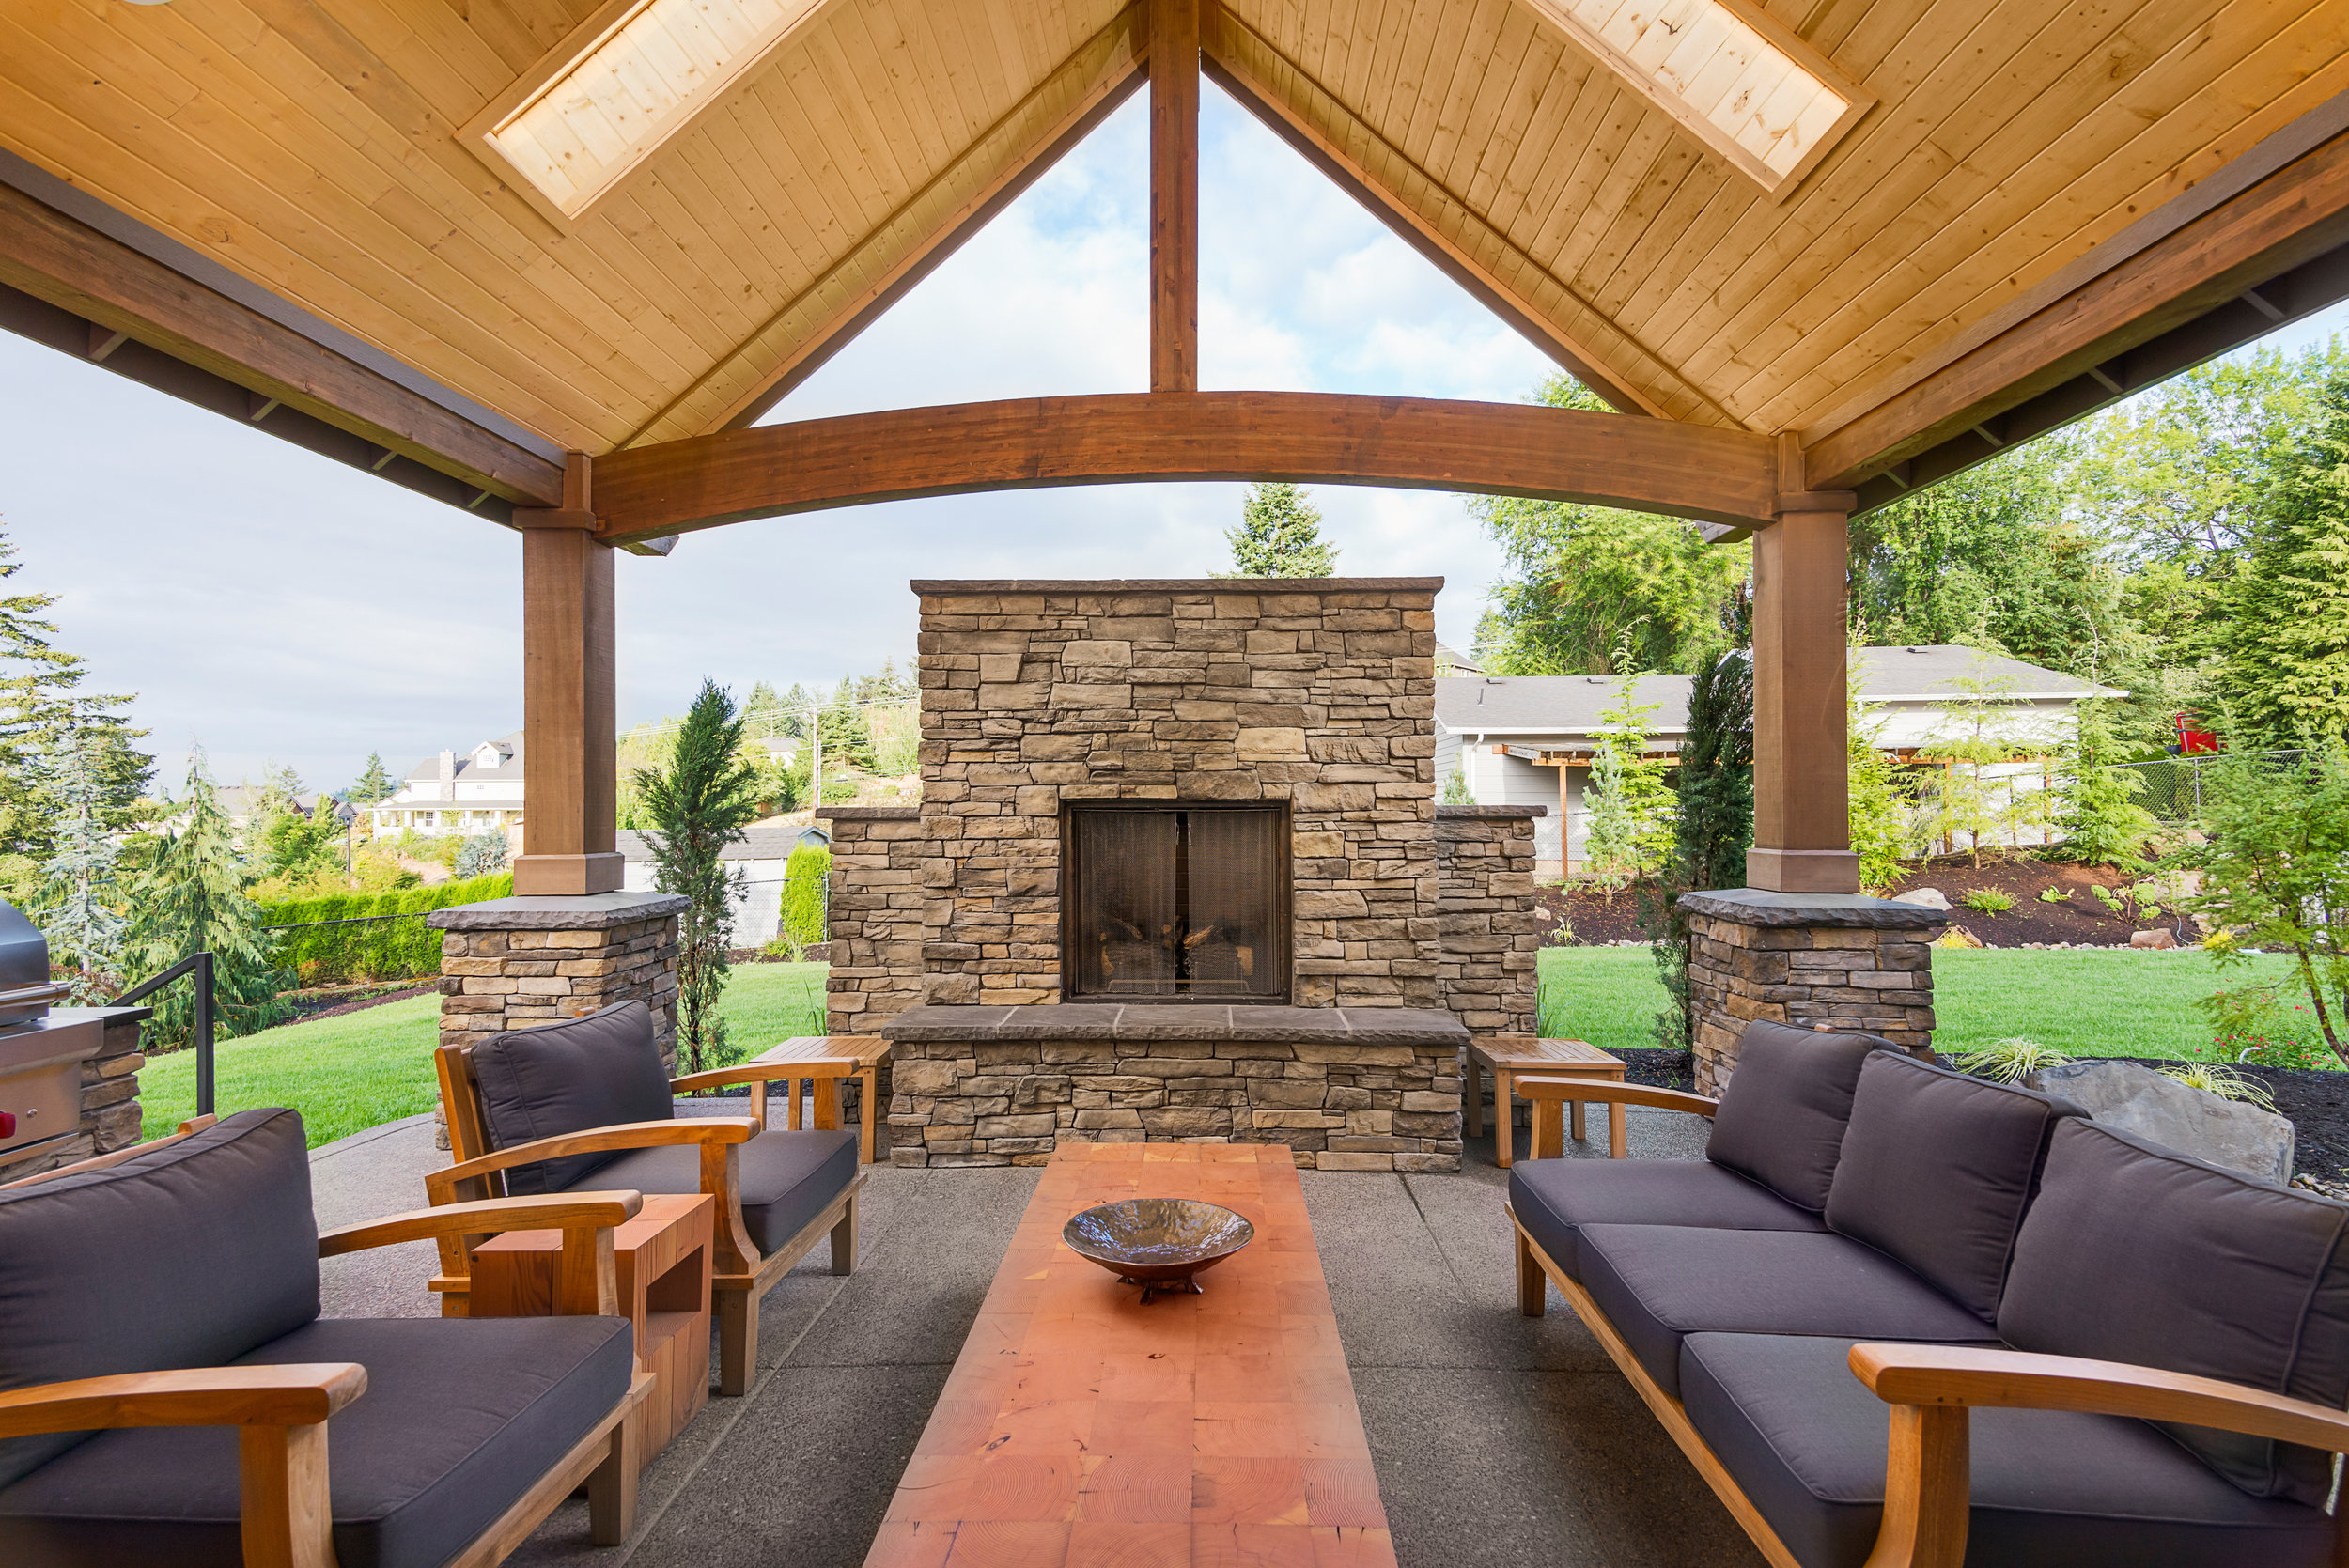 covered room outdoor pavilion fireplace patio landscape design plantings